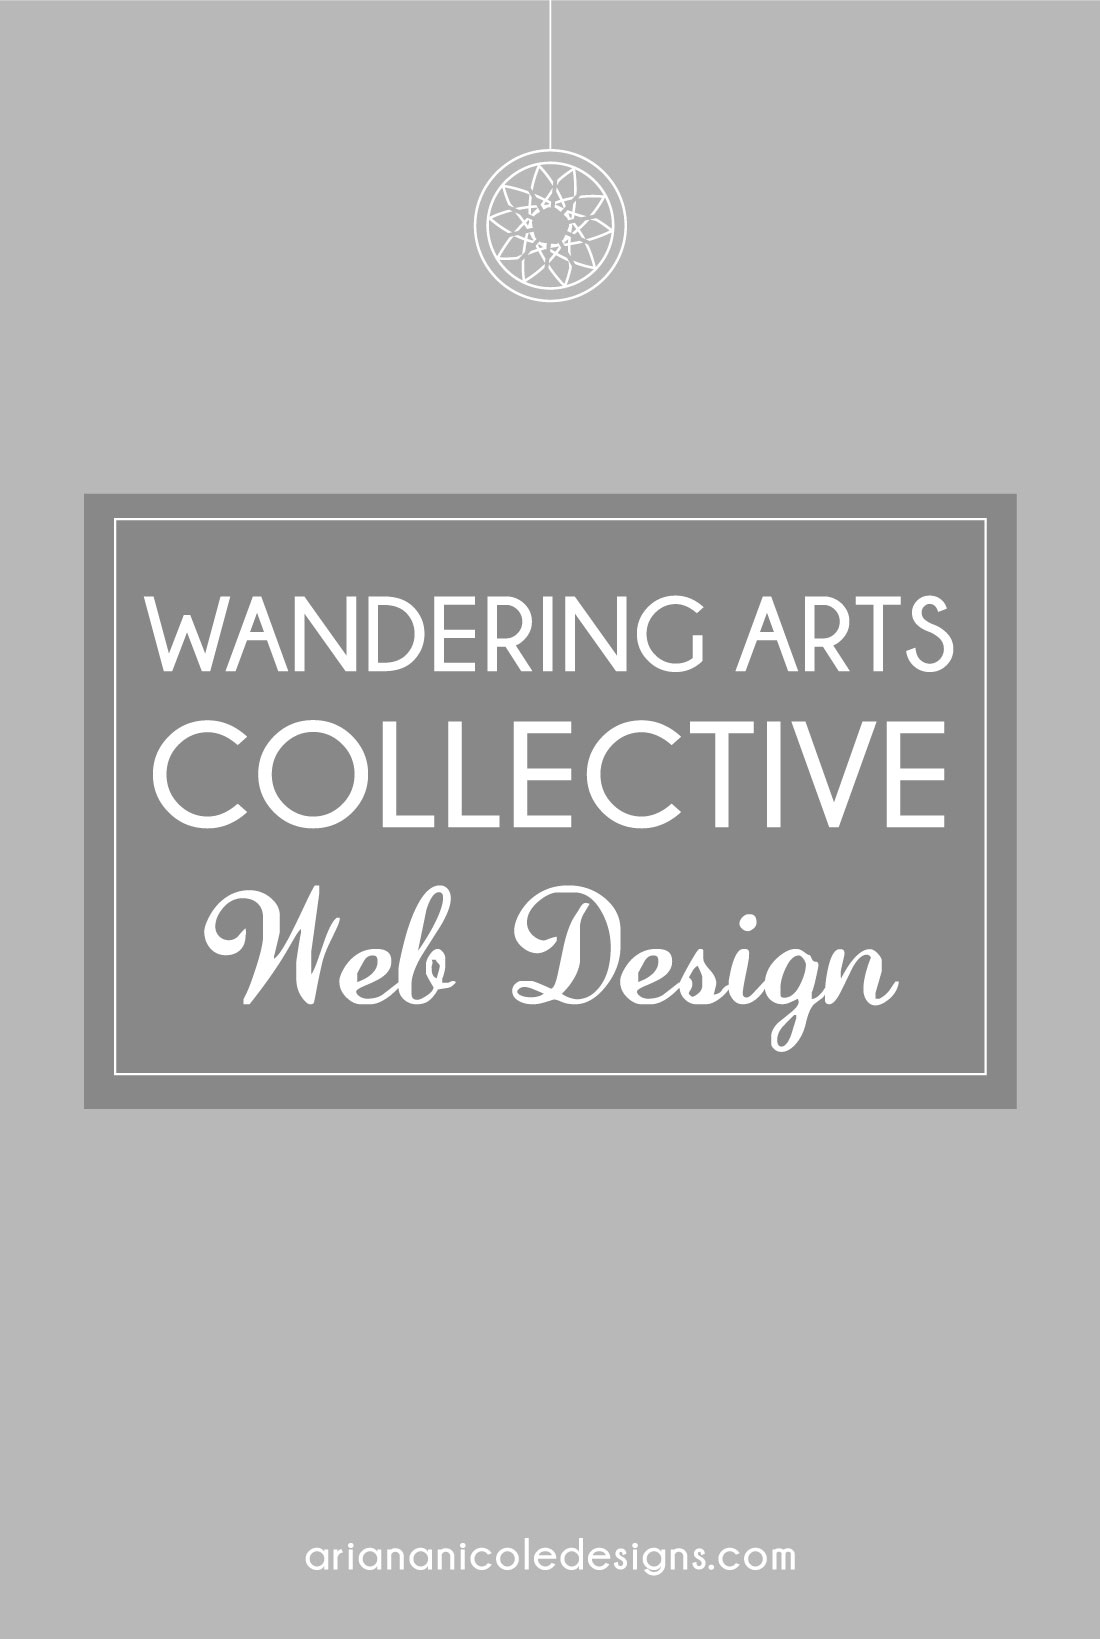 Wandering Arts Collective Web Design by Ariana Nicole